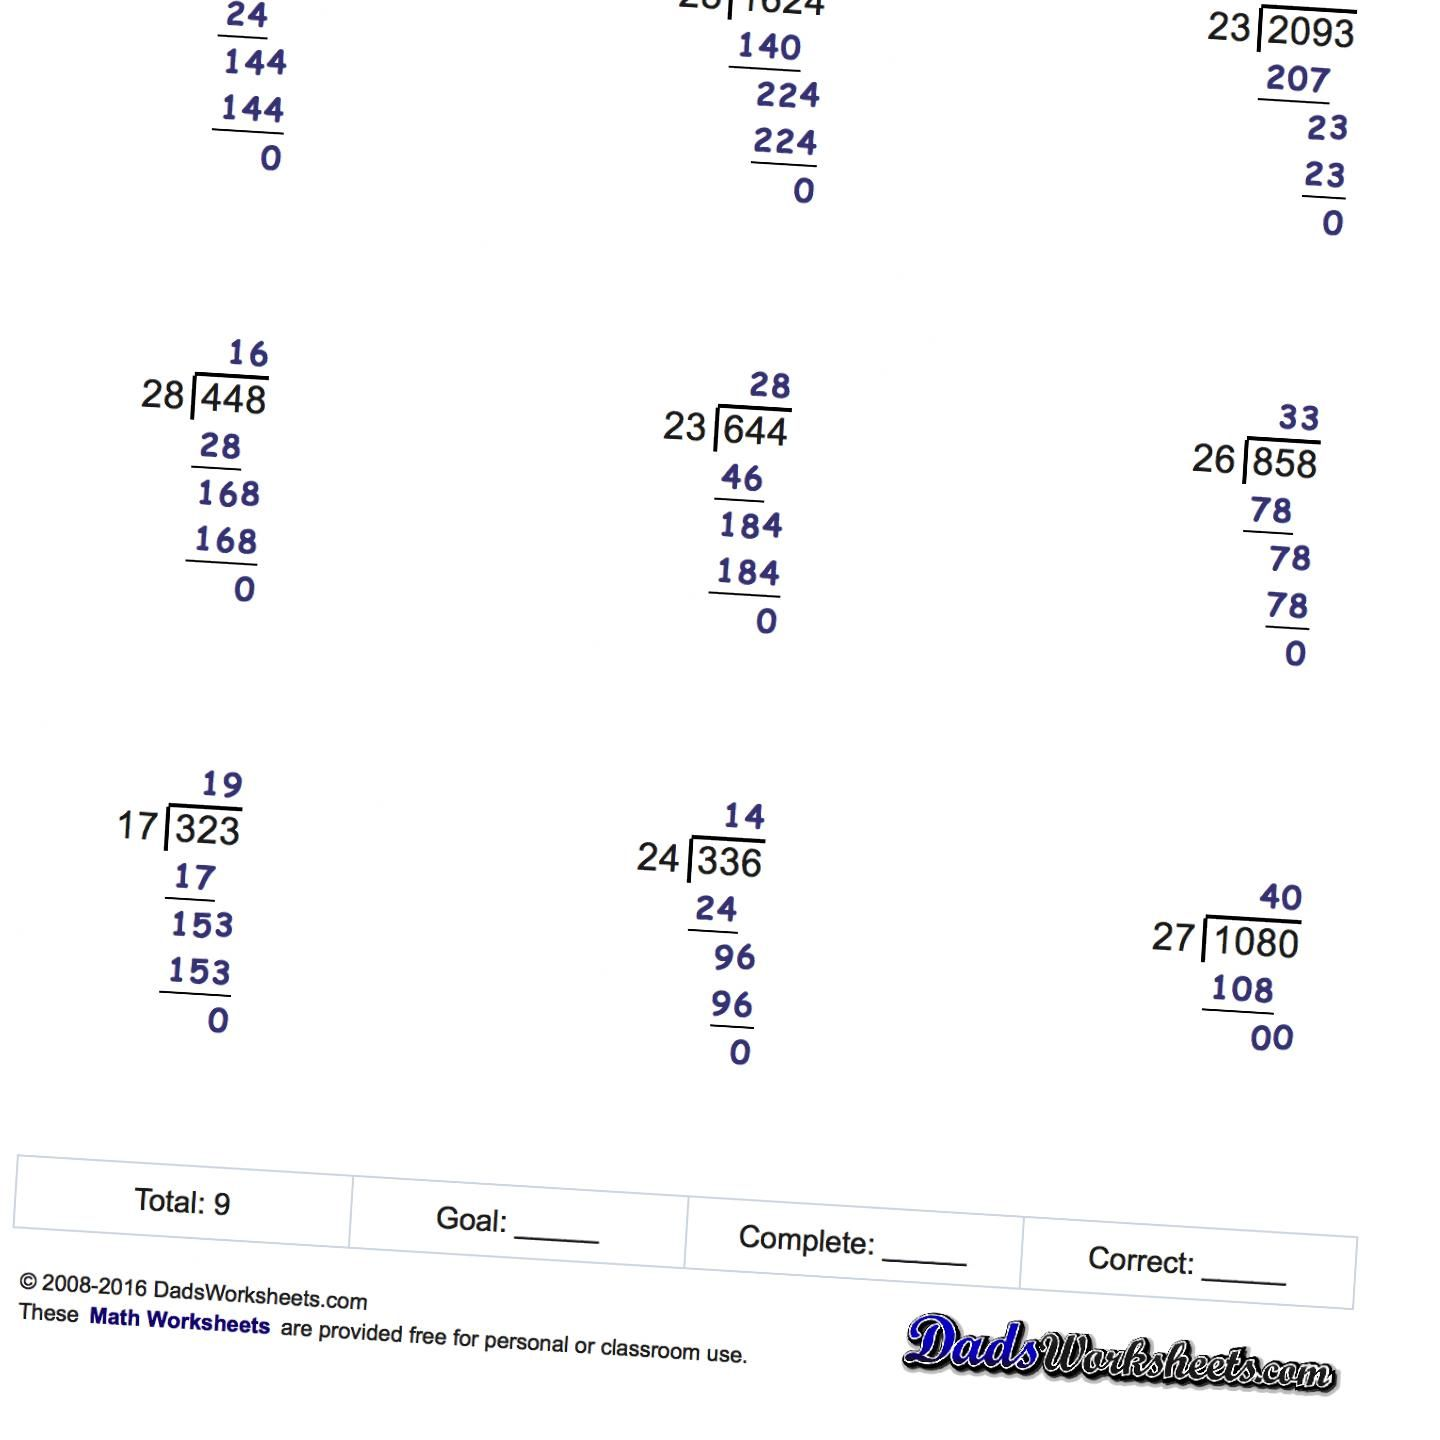 long division worksheets printable with answer keys that show all the work great for student. Black Bedroom Furniture Sets. Home Design Ideas